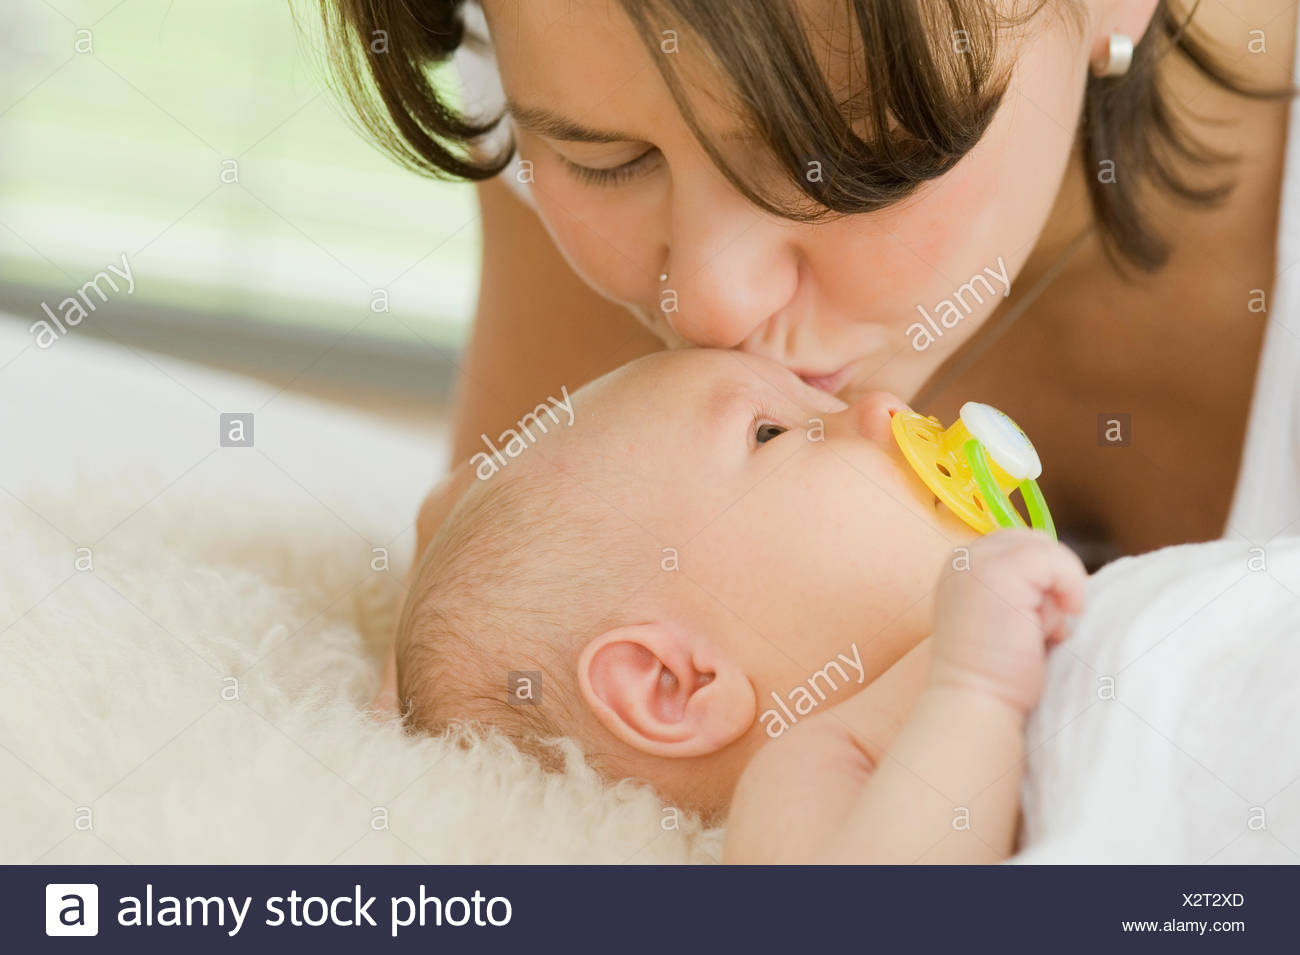 Mother kissing baby tenderly on forehead - Stock Image